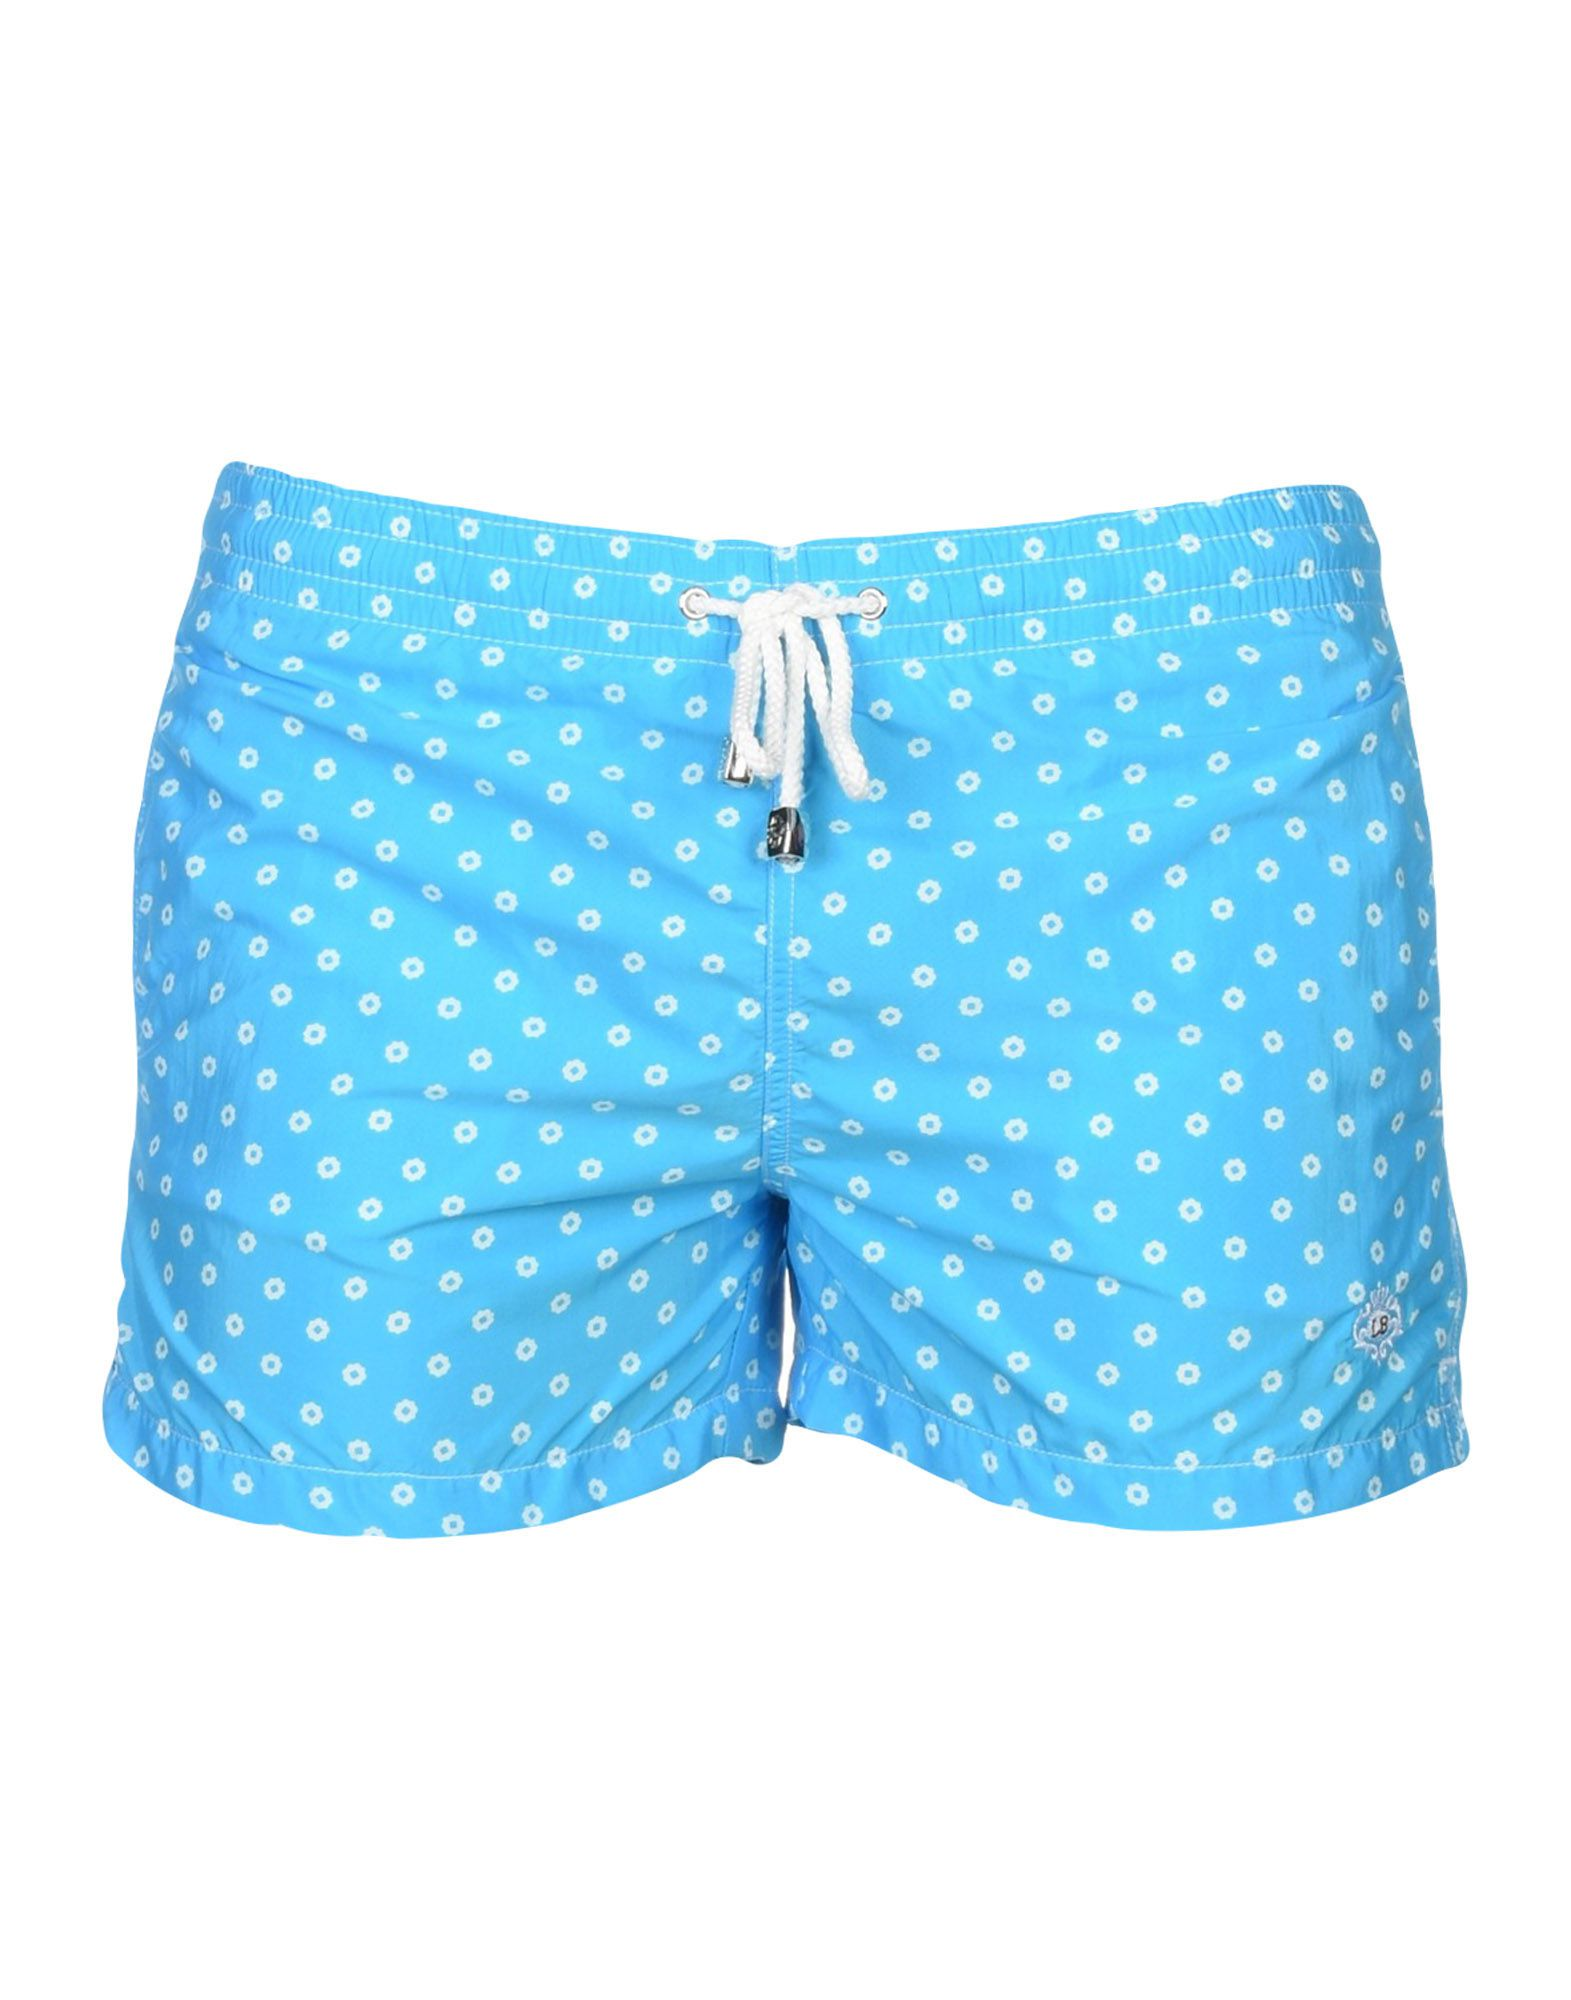 31054c8646 Luigi Borrelli Napoli Swim Shorts - Men Luigi Borrelli Napoli Swim ...